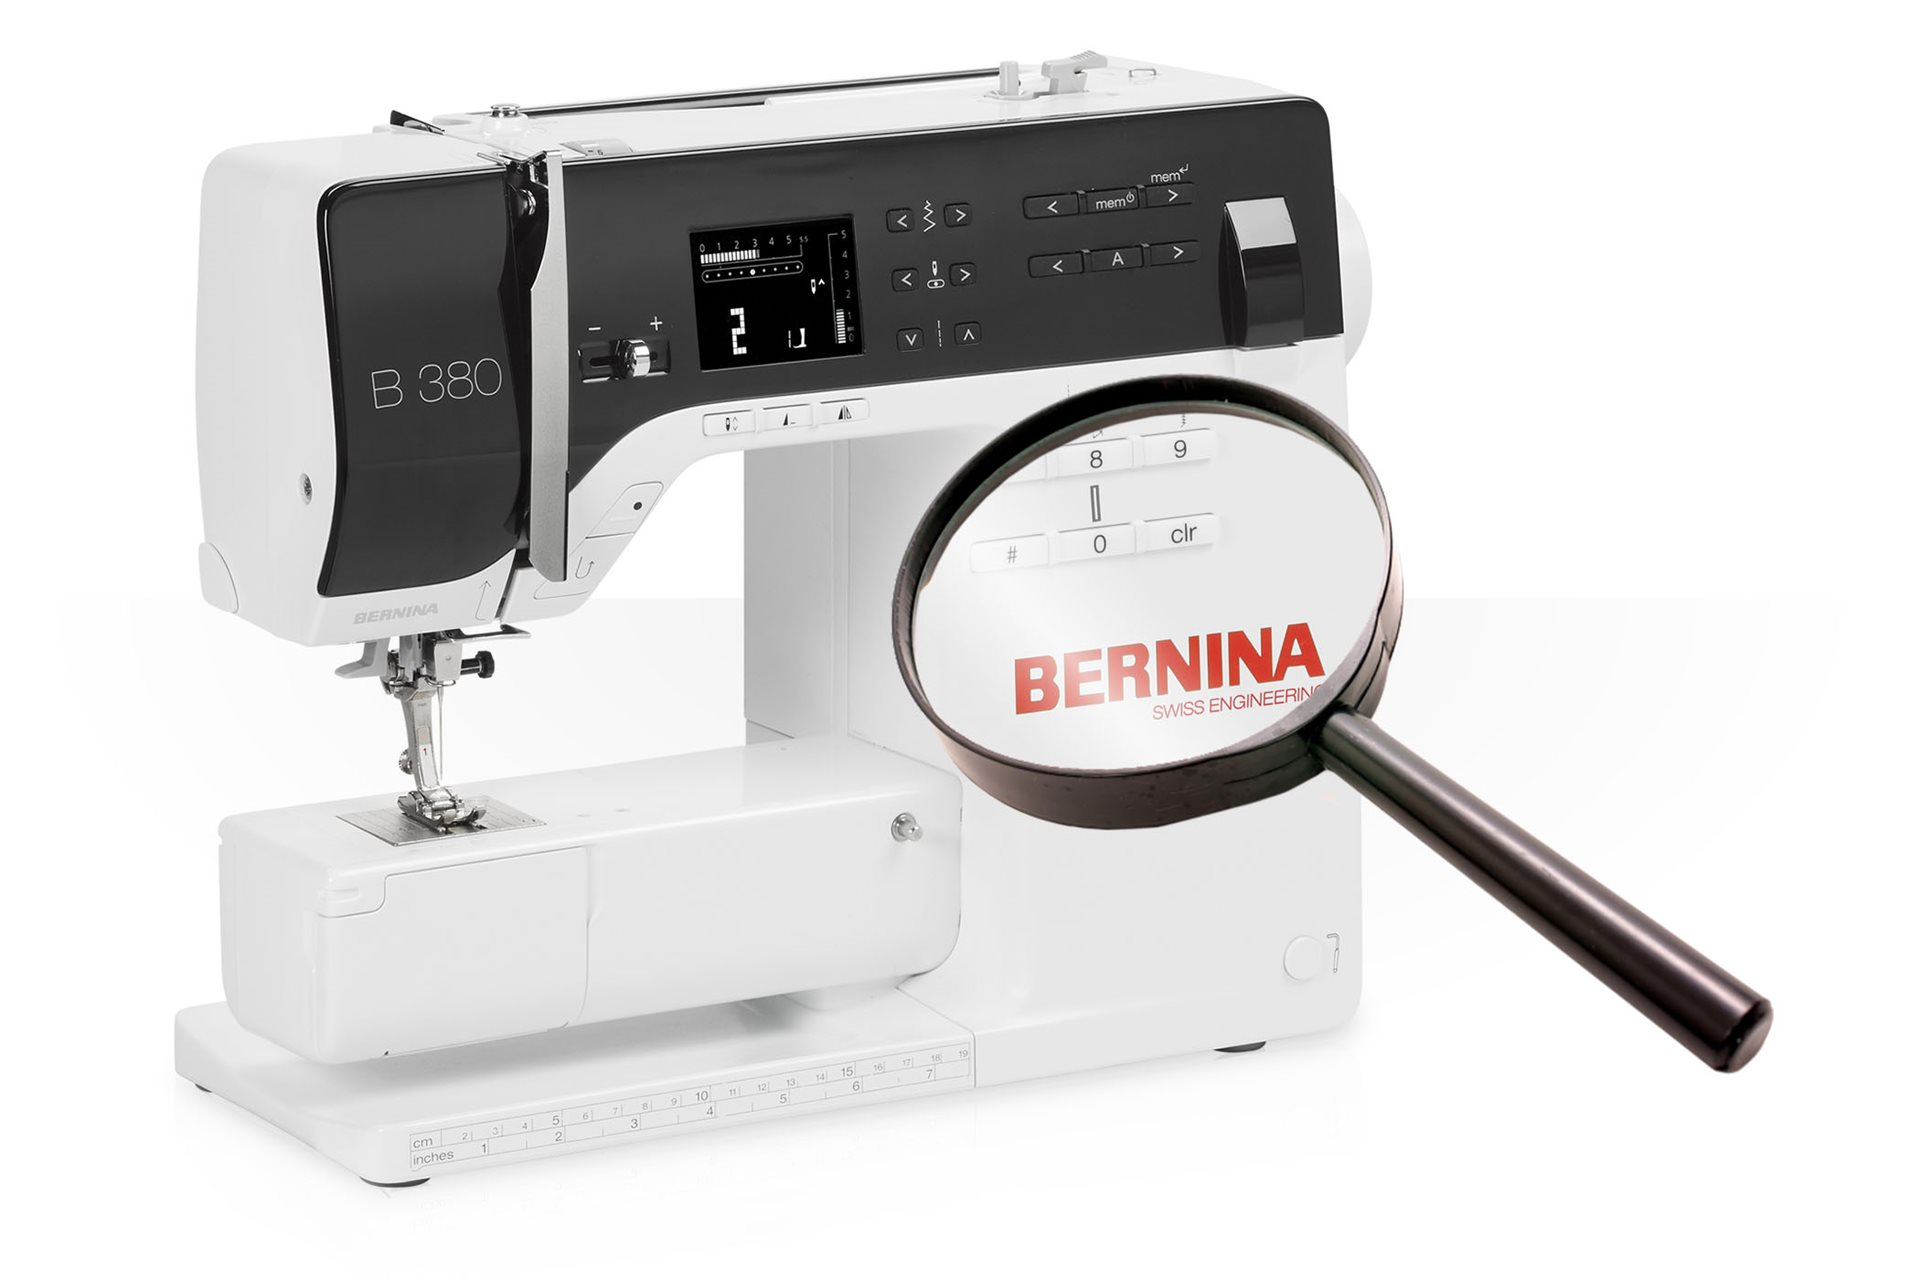 Search support info for BERNINA models